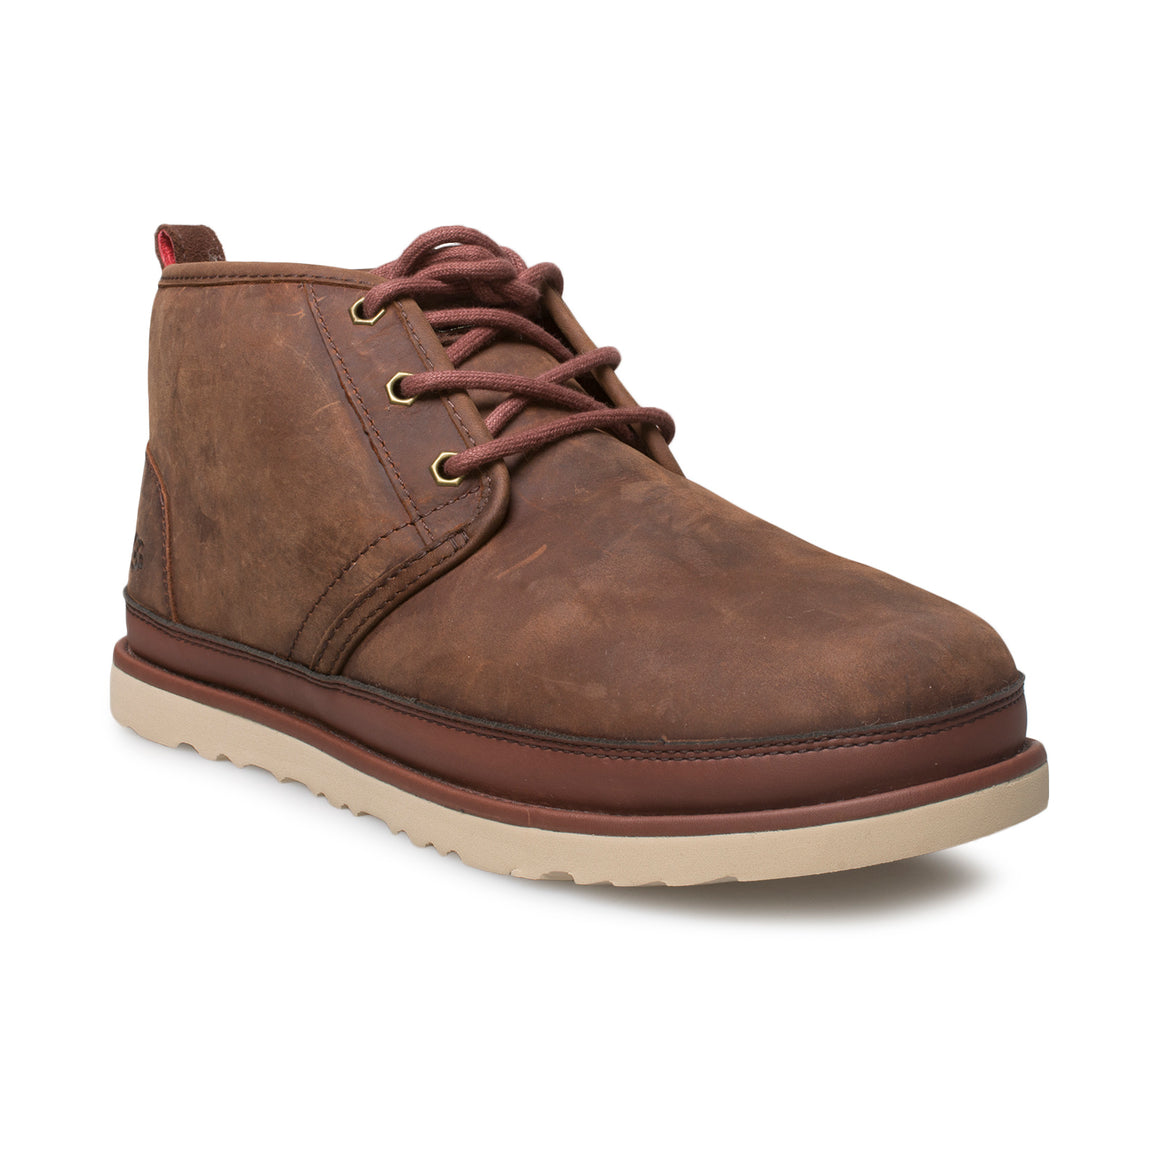 UGG Neumel Waterproof Chestnut Boots - Men's